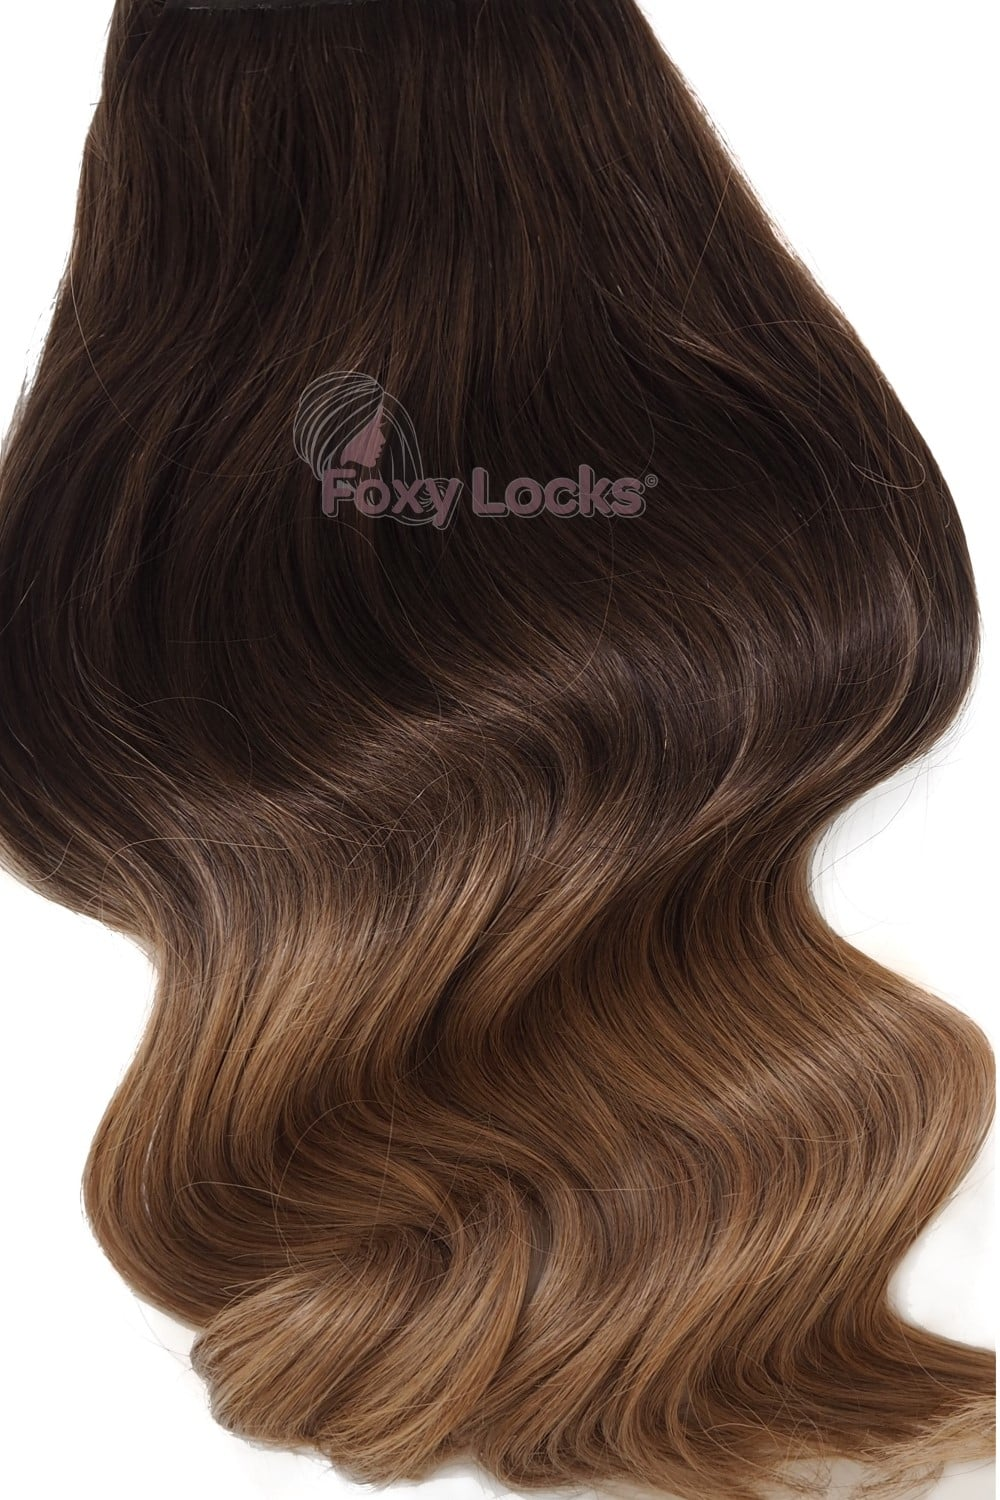 Toffee ombre luxurious 24 clip in human hair extensions 280g mocha toffee ombre luxurious 24 clip in human hair extensions 280g pmusecretfo Image collections